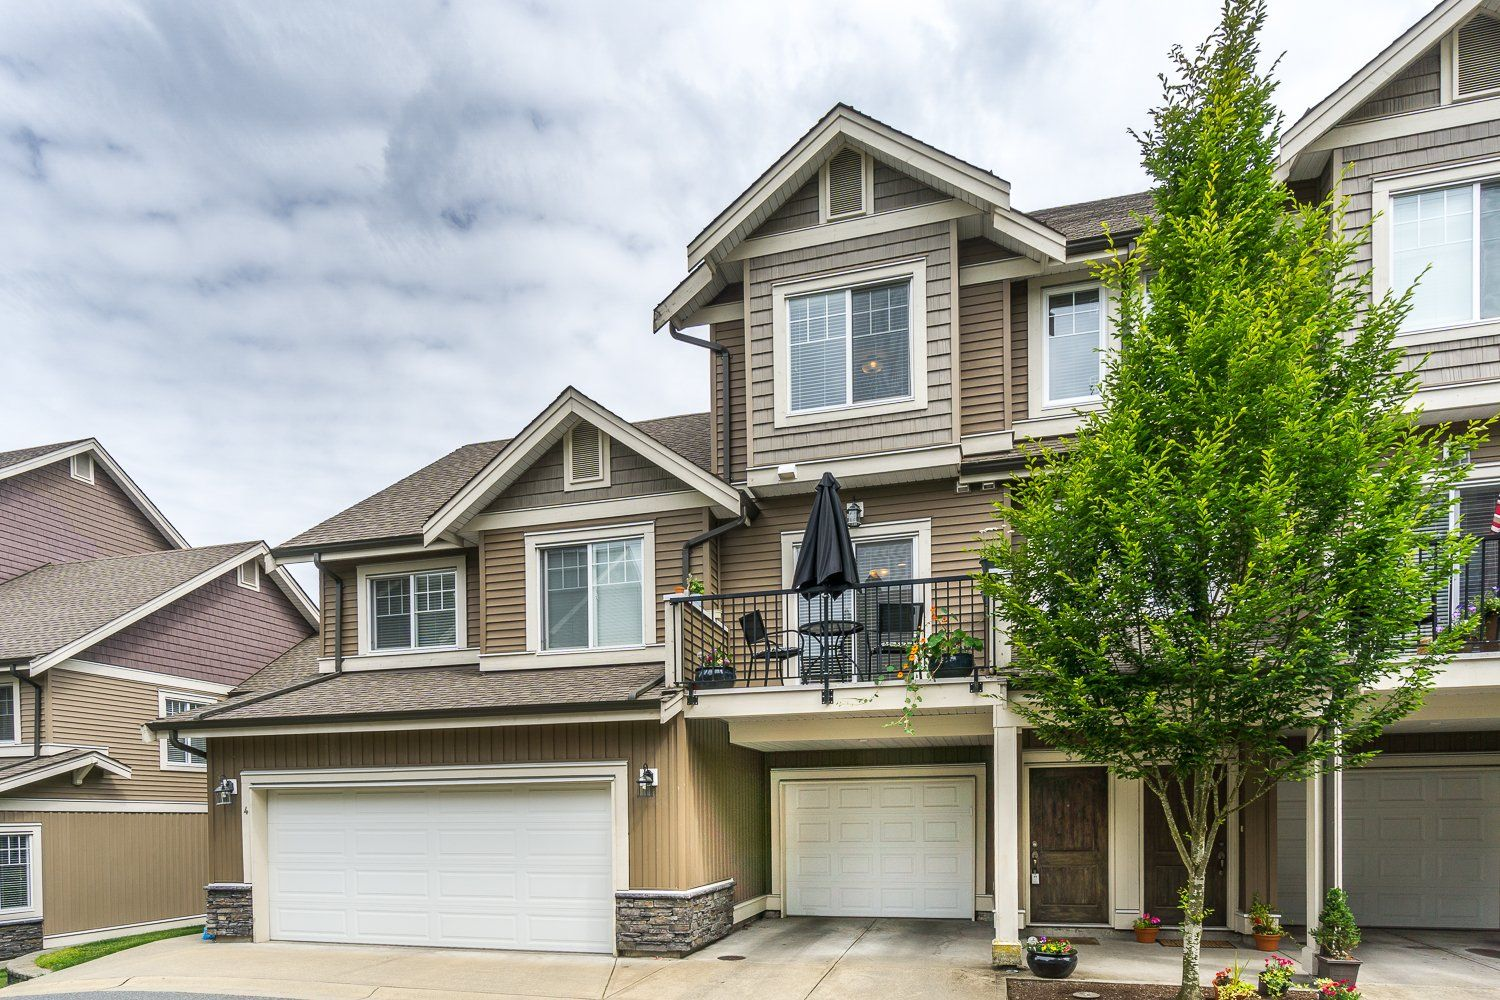 ** Open House on Sat. June 25 from 111 ** A nicely